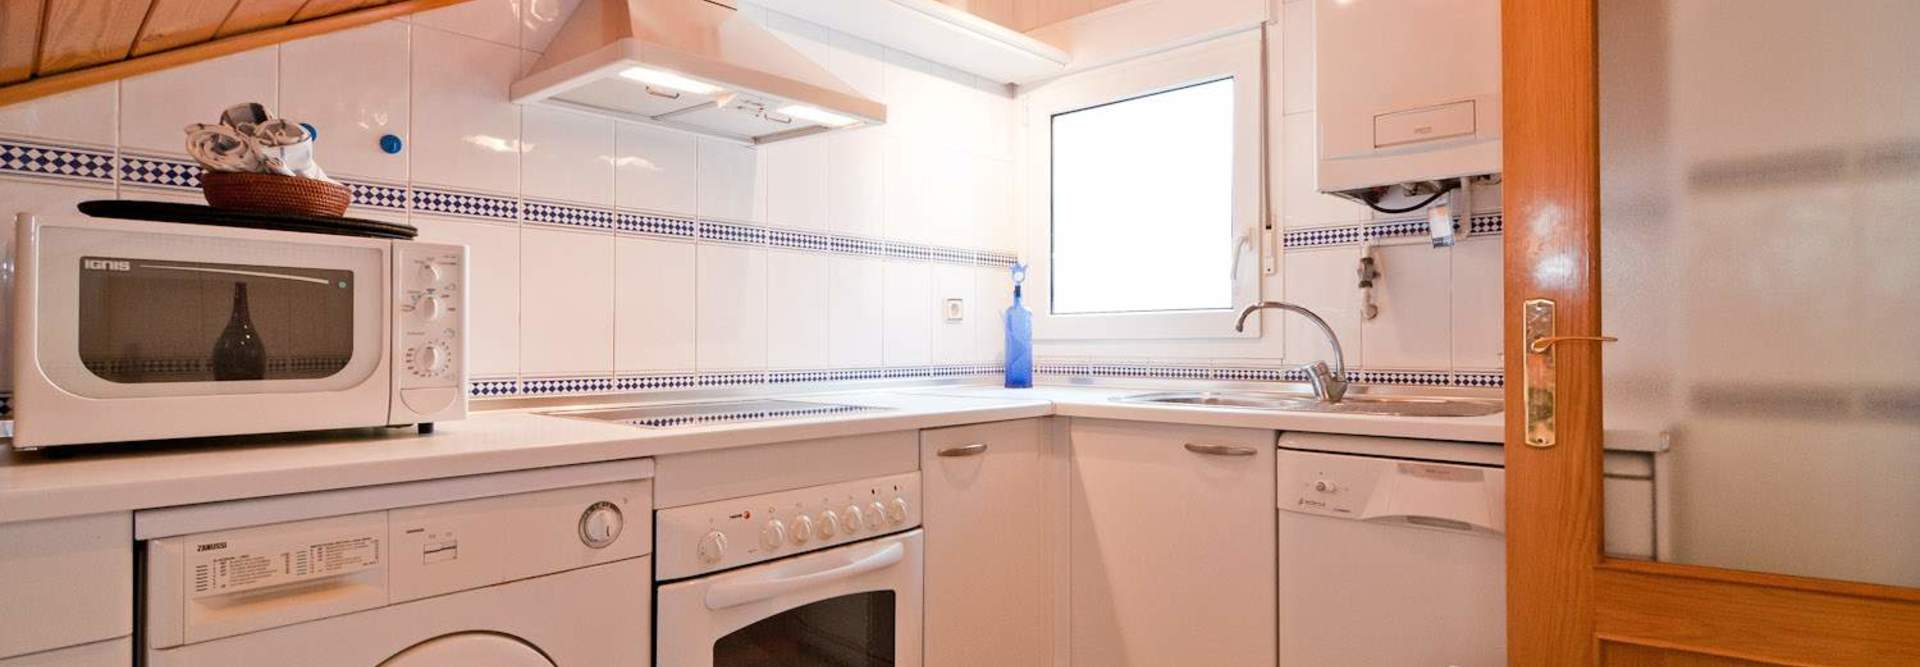 Home alquiler apartamento madrid centro mad4rent  20